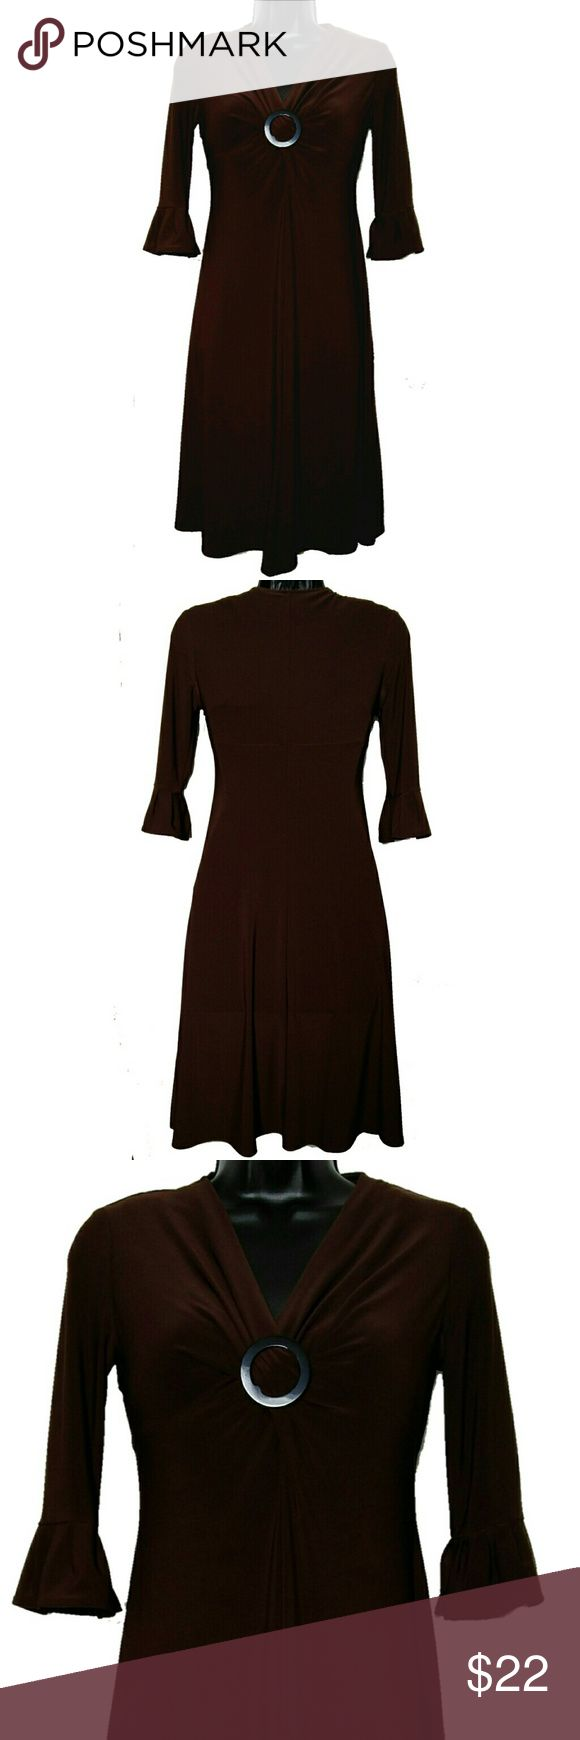 EVAN PICONE Stretch Buckle 3/4 Bell Sleeve Dress Exquisite EVAN PICONE Dress. Dark brown color. Empire waist with metal buckle accent and ruching. 100% polyester. Sumptuously soft and figure flattering contours to your shape. Size 2P. Approximate measurements of the dress are Bust 35 inches and Length 38 inches. 3/4 bell sleeves. Excellent condition. Evan Picone Dresses